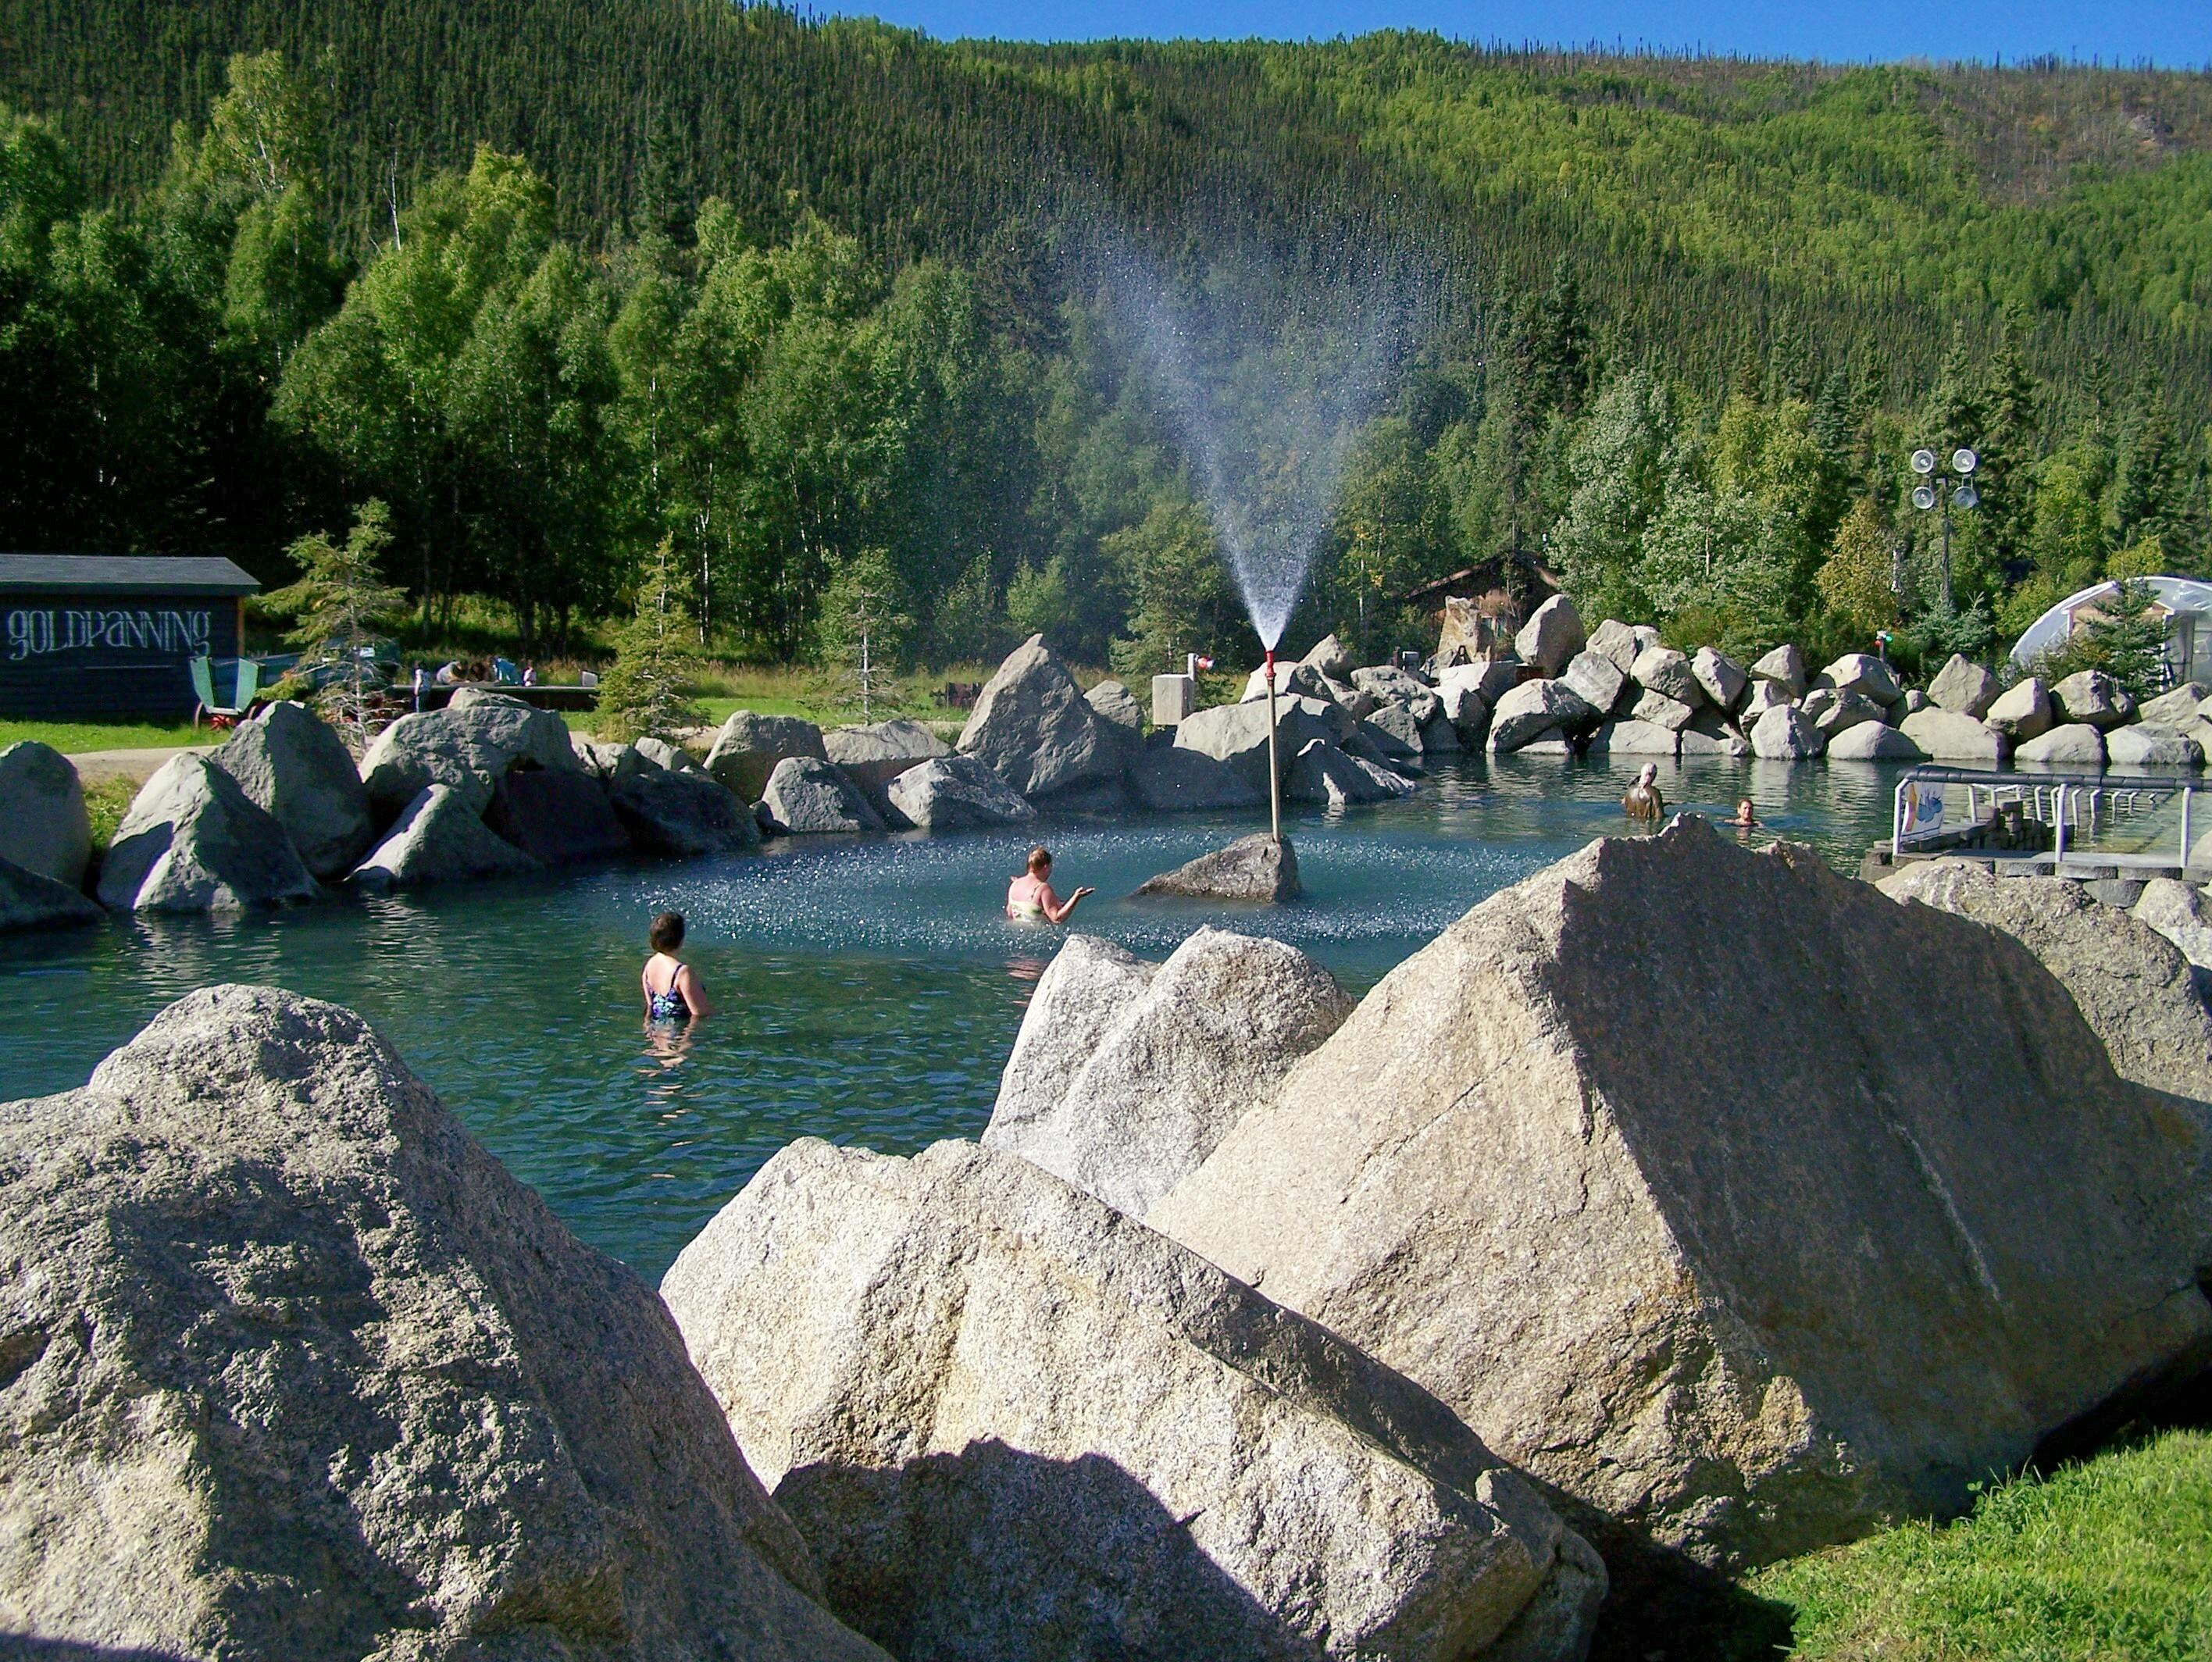 Summer hot springs lake (ages 18+)